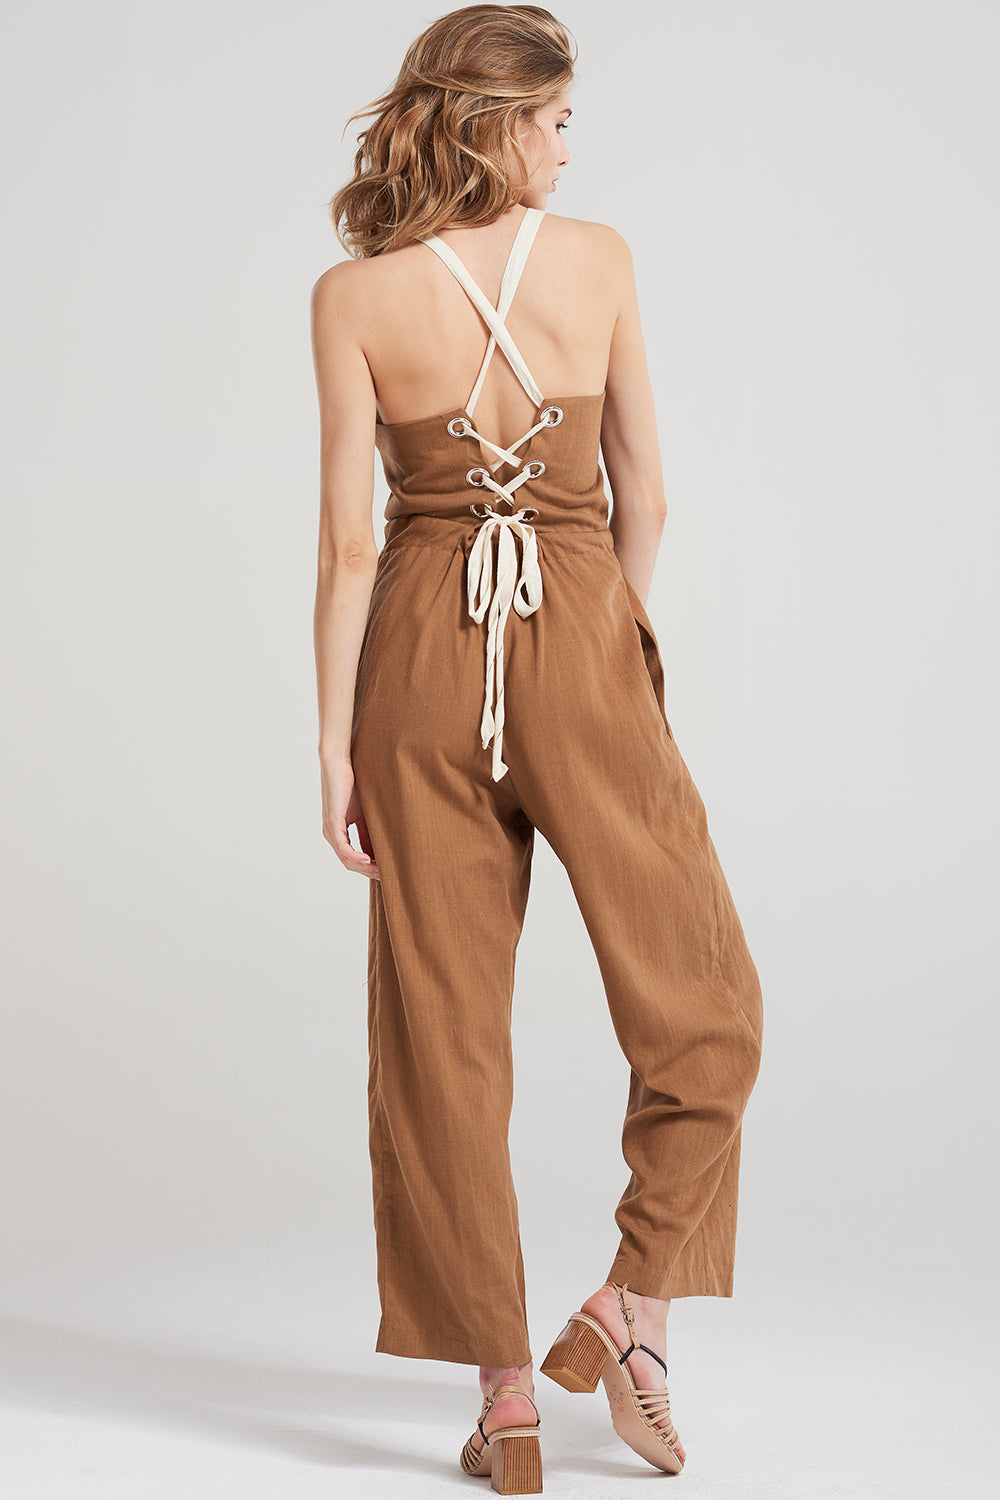 Stacey Back Crosslace Romper-Brown